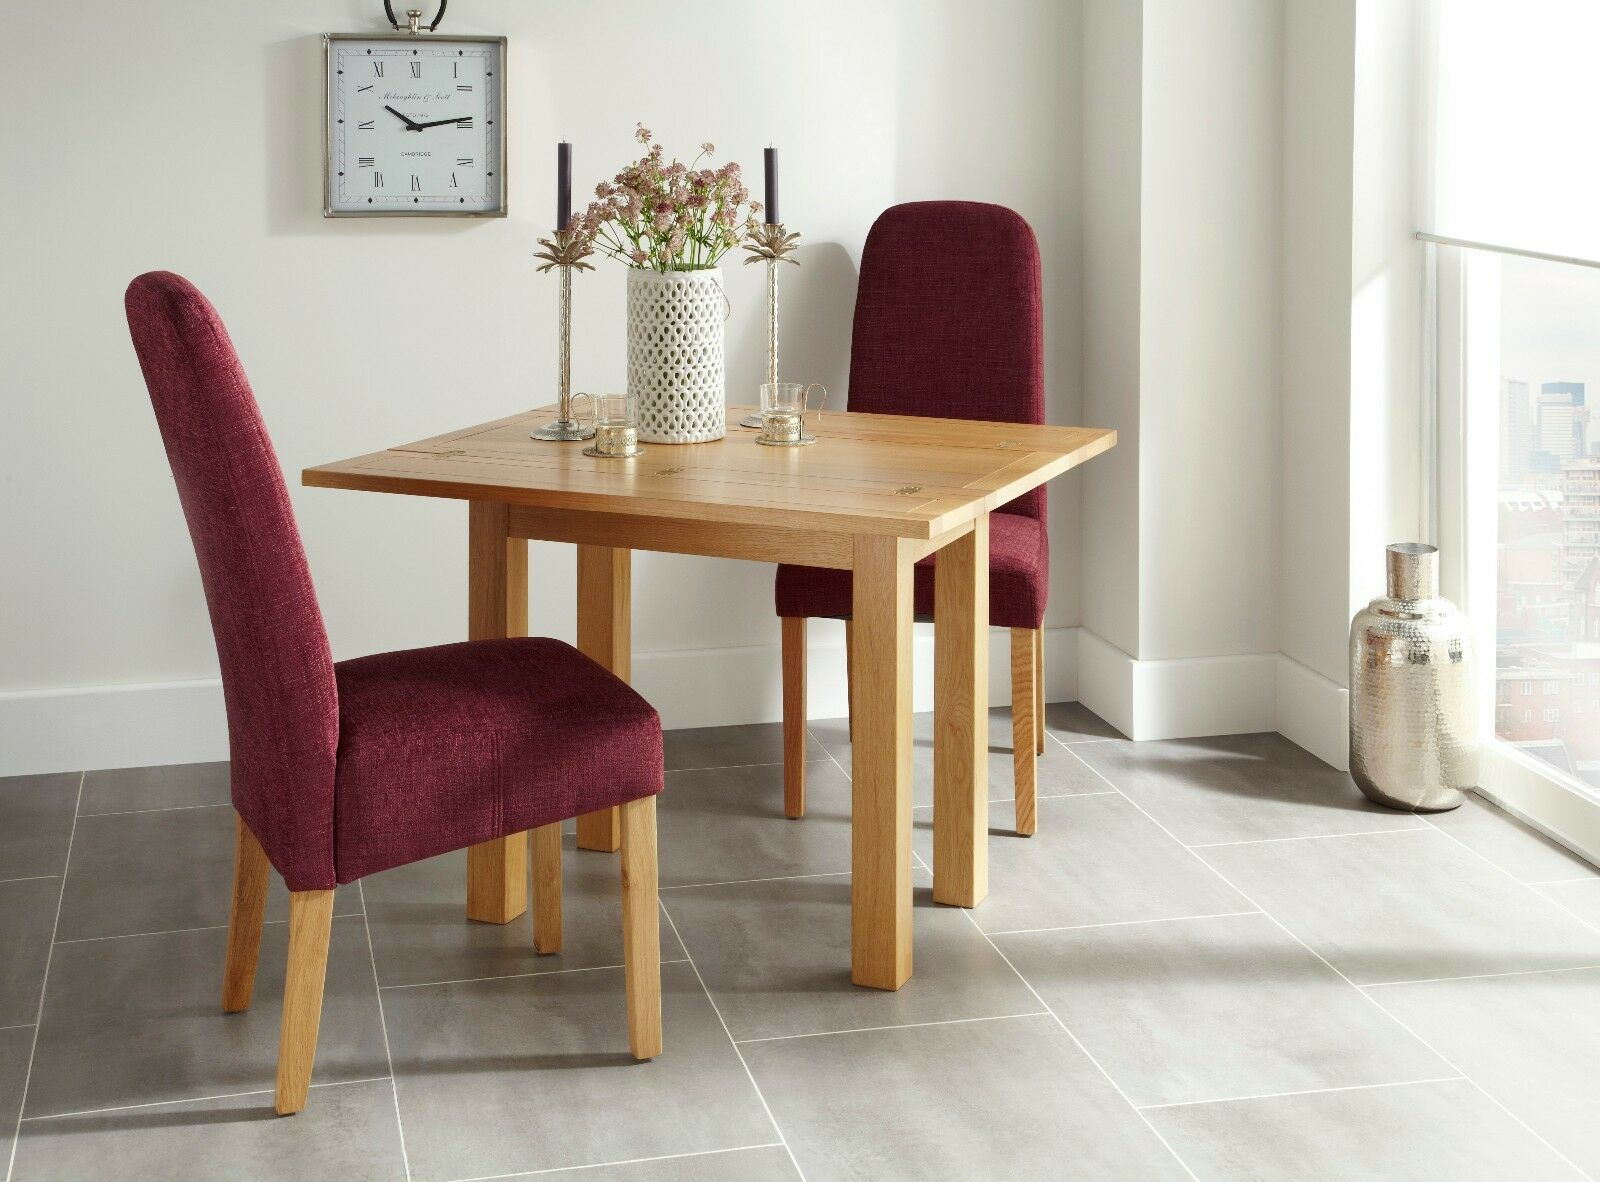 Magnificent Details About Stanton Extendable 4 Seater Dining Table Solid Oak Wood Square Optional Chairs Download Free Architecture Designs Sospemadebymaigaardcom